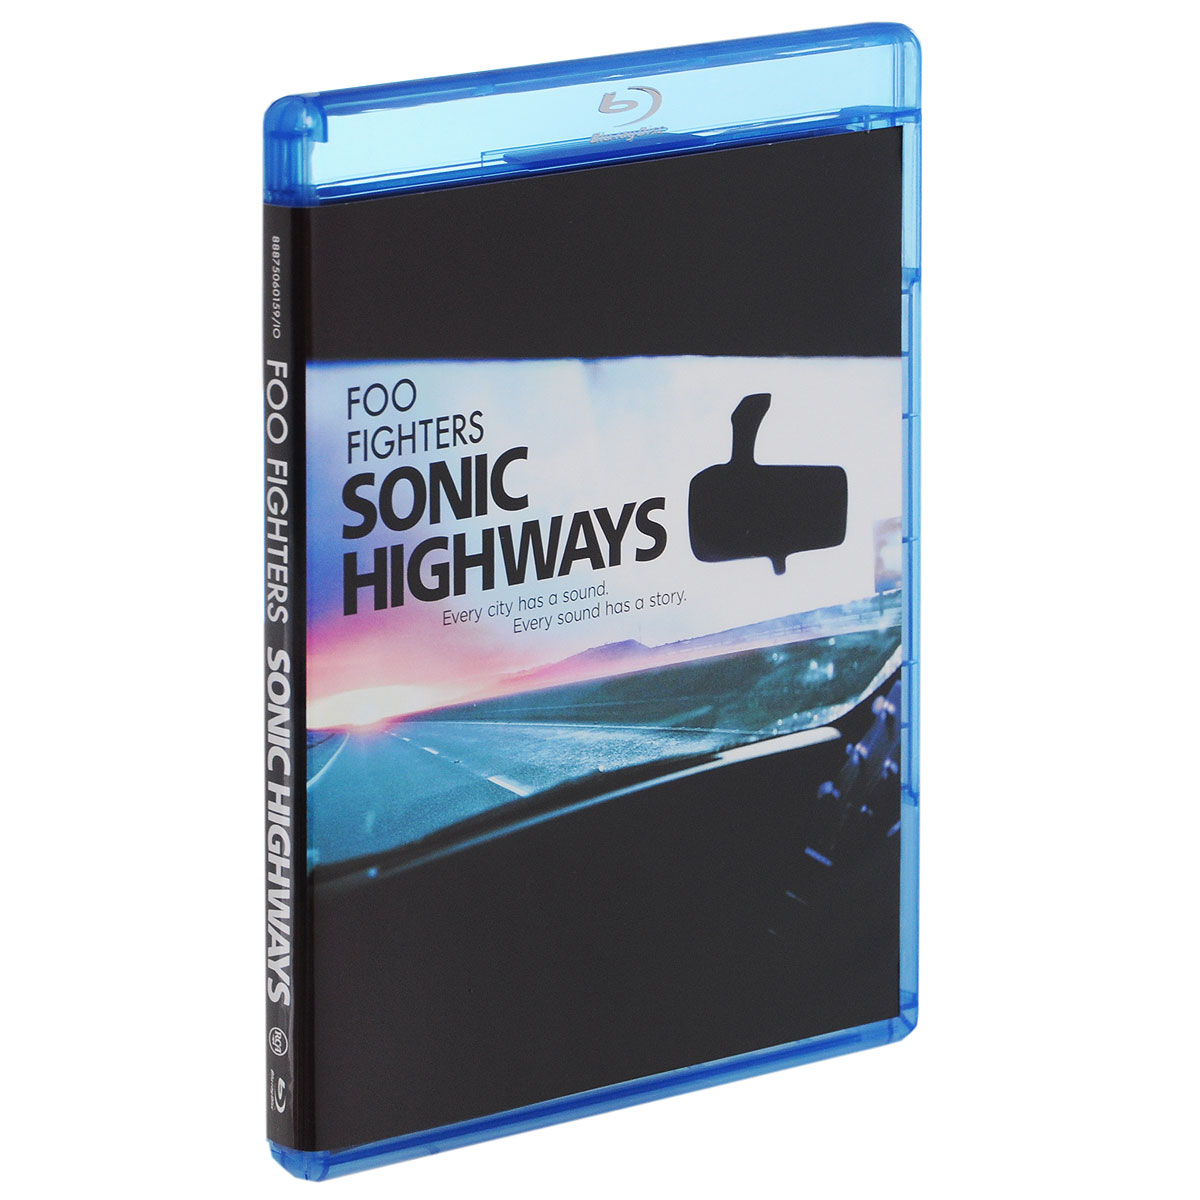 Foo Fighters: Sonic Highways (3 Blu-ray) history of south indian musical forms